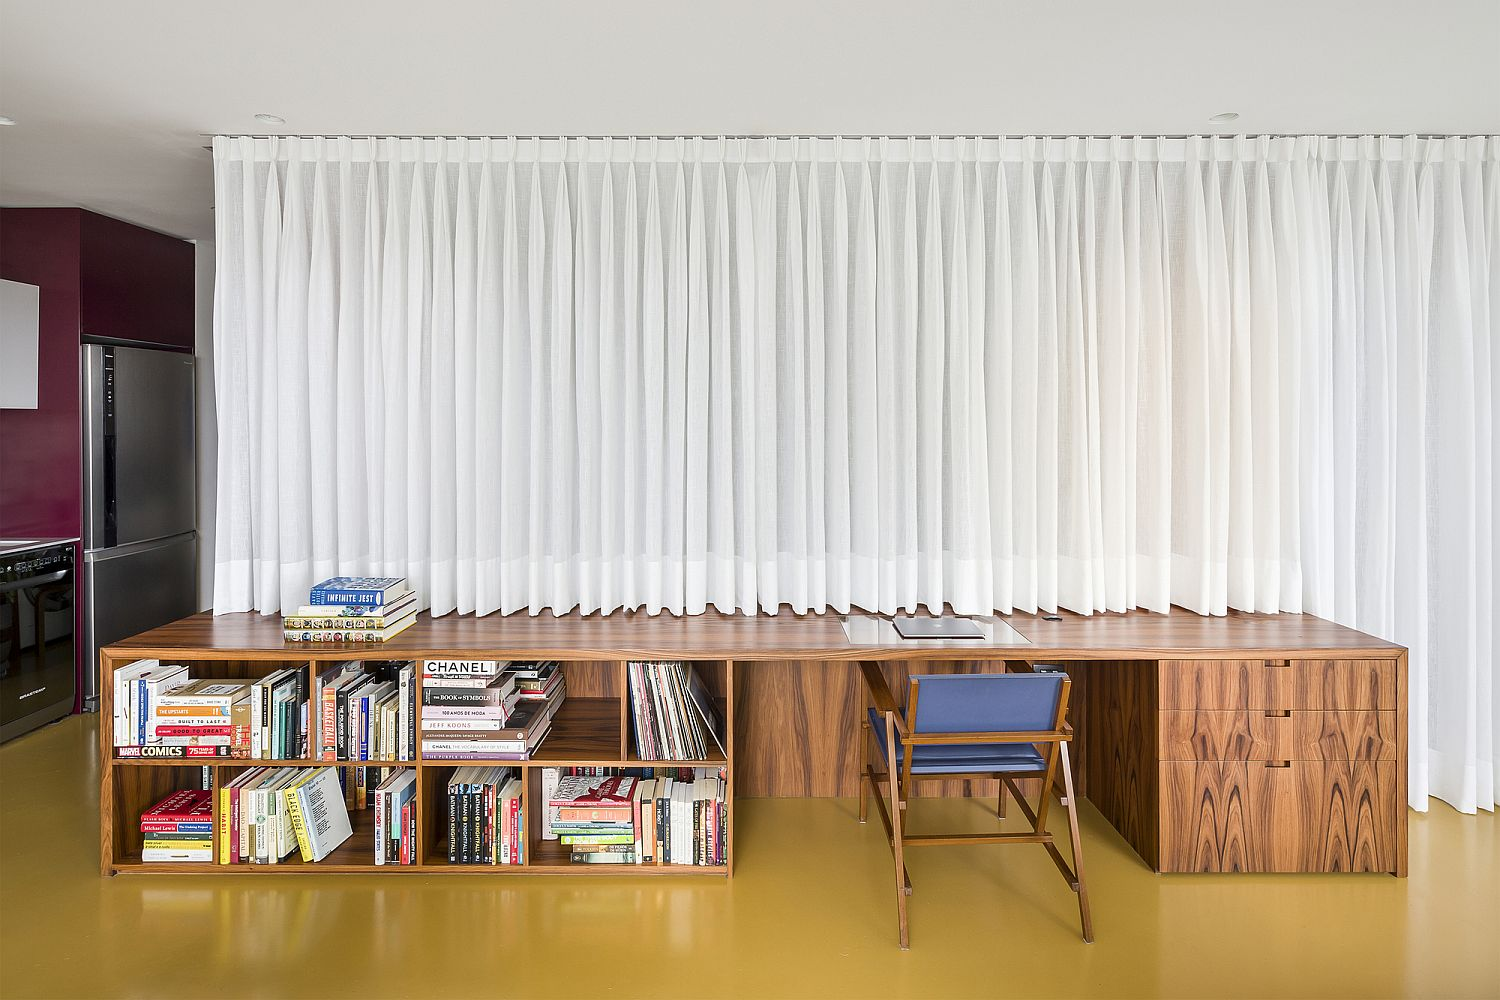 Drapes hide the bespoke wooden structure that contains the bedroom, bathroom and more